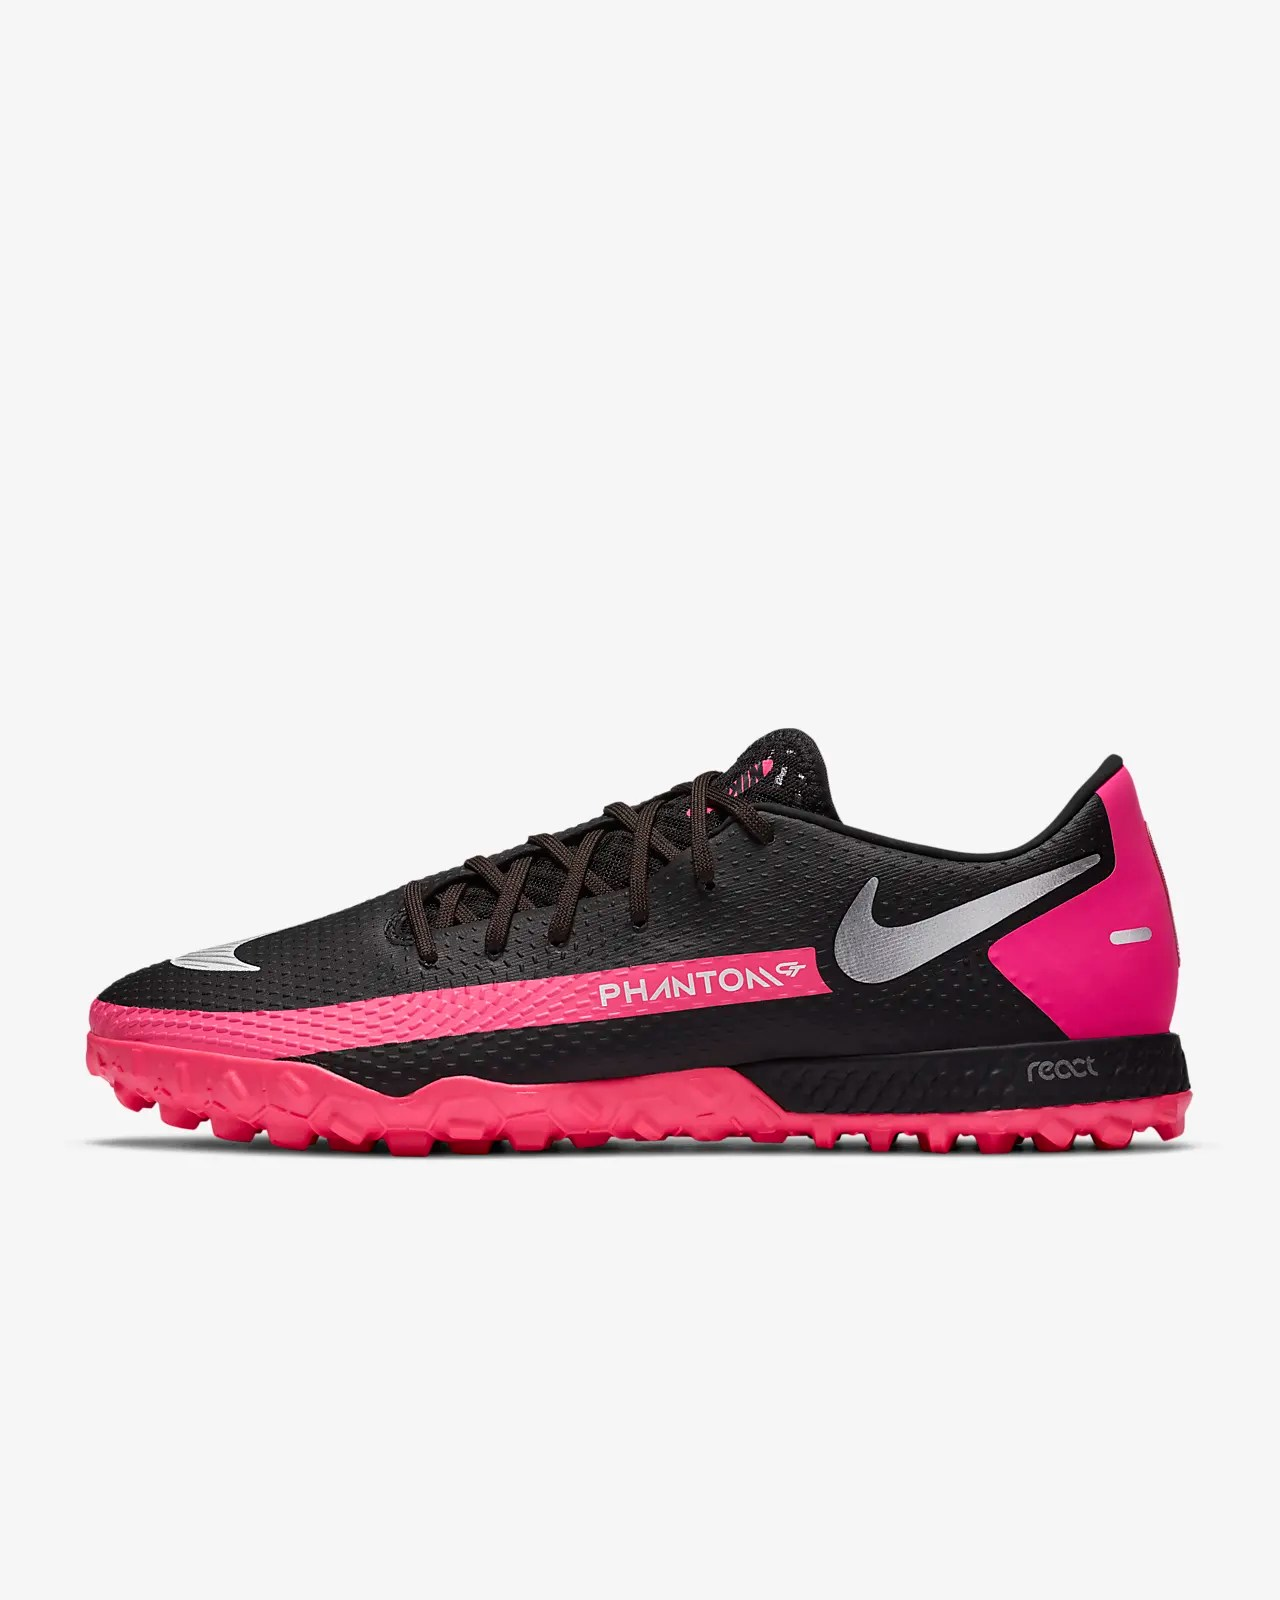 Nike React Phantom GT Pro TF 人工短草草皮足球鞋。Nike TW